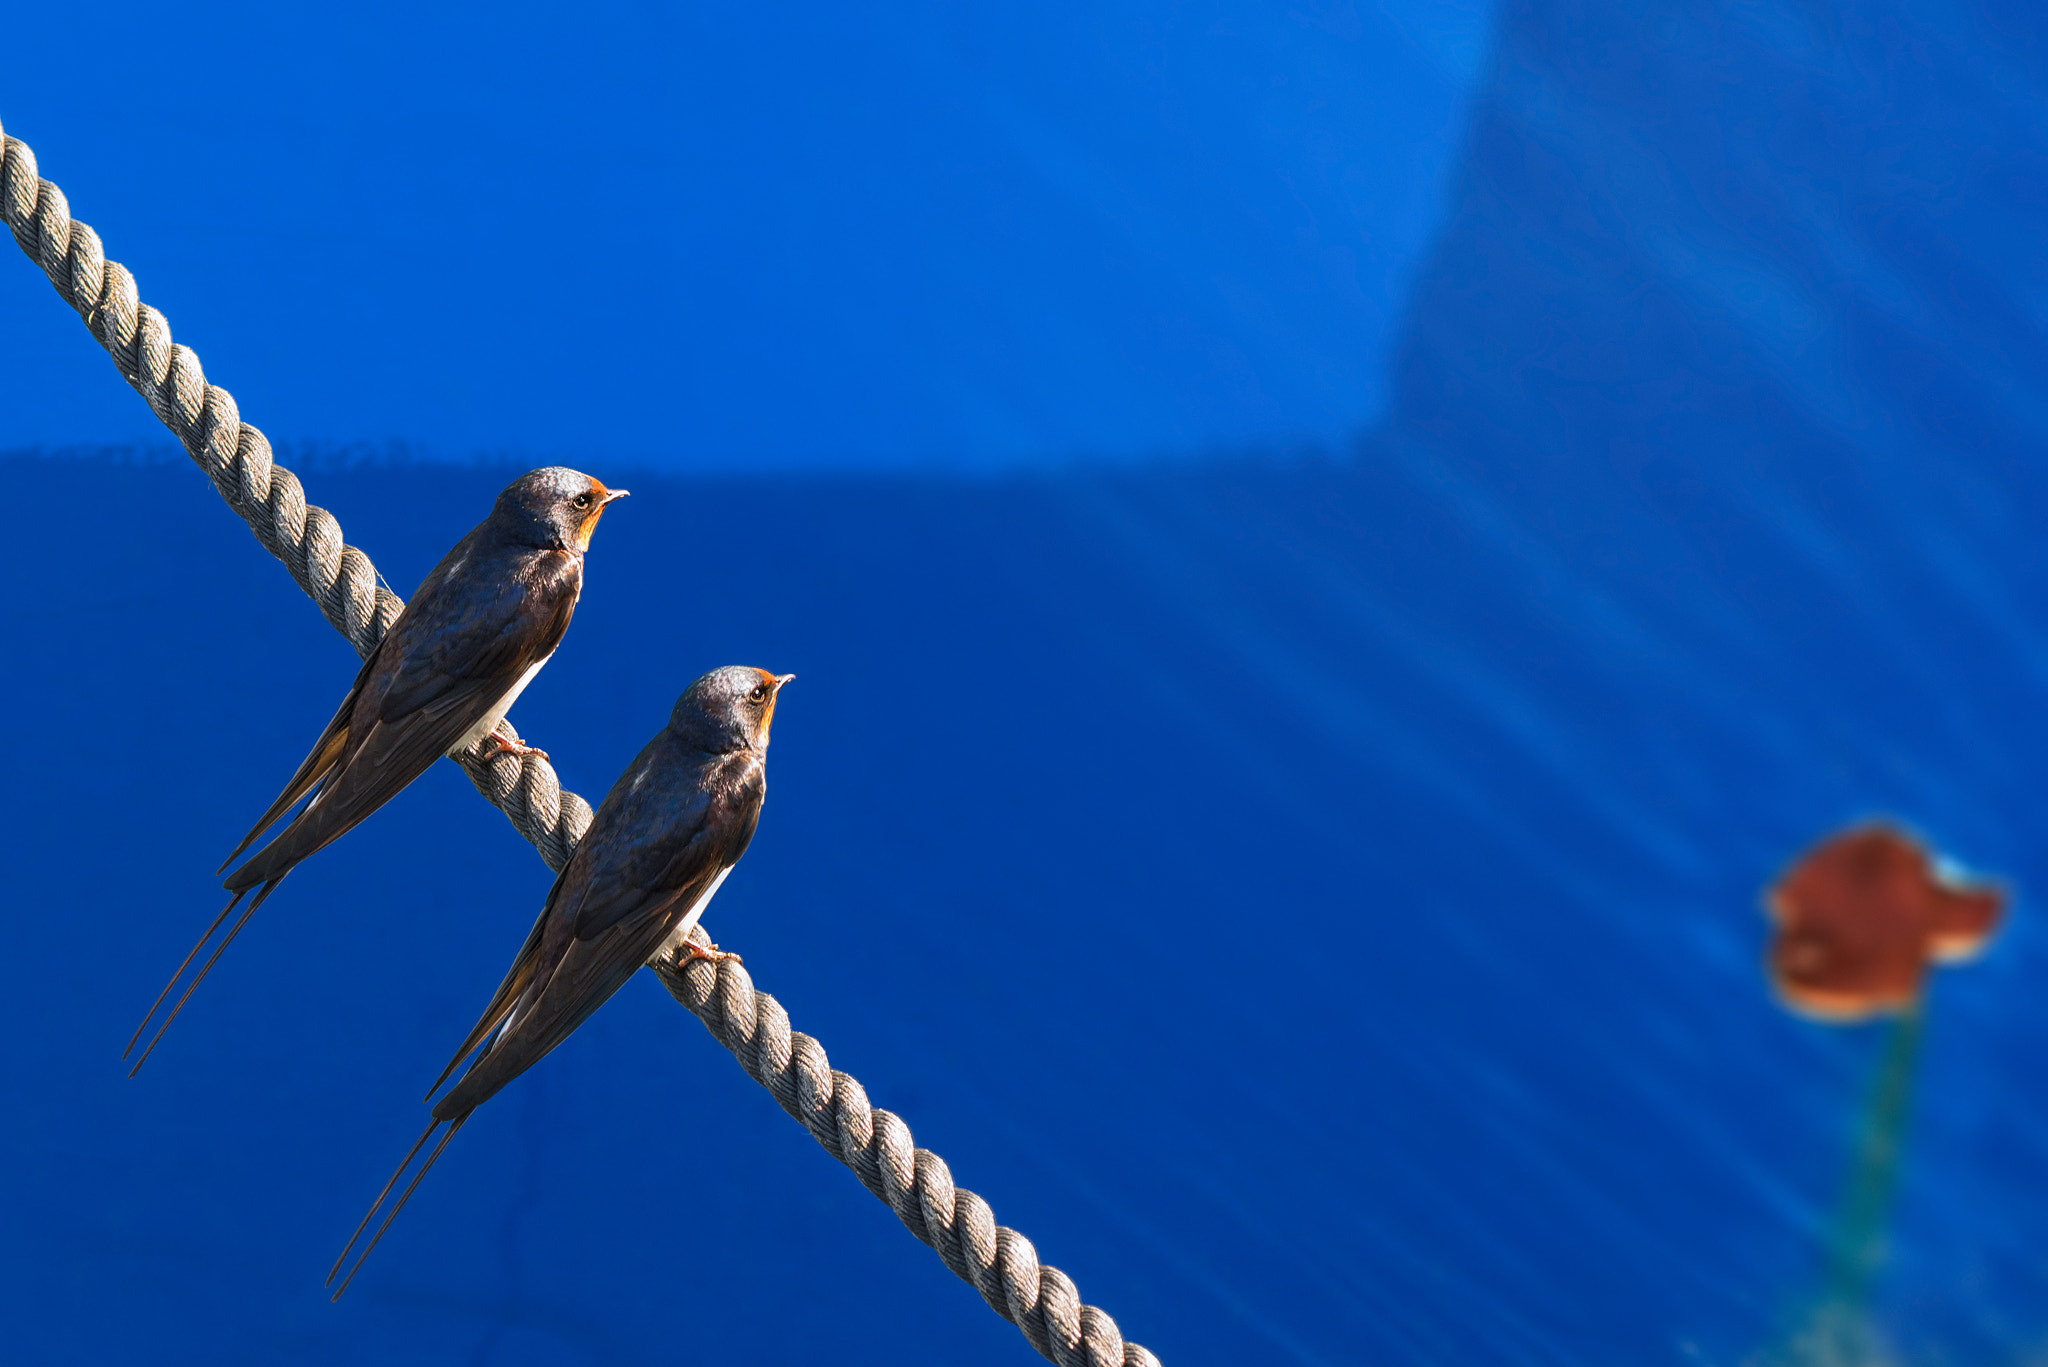 Photograph Two Barn Swallows by Stefan Holm on 500px